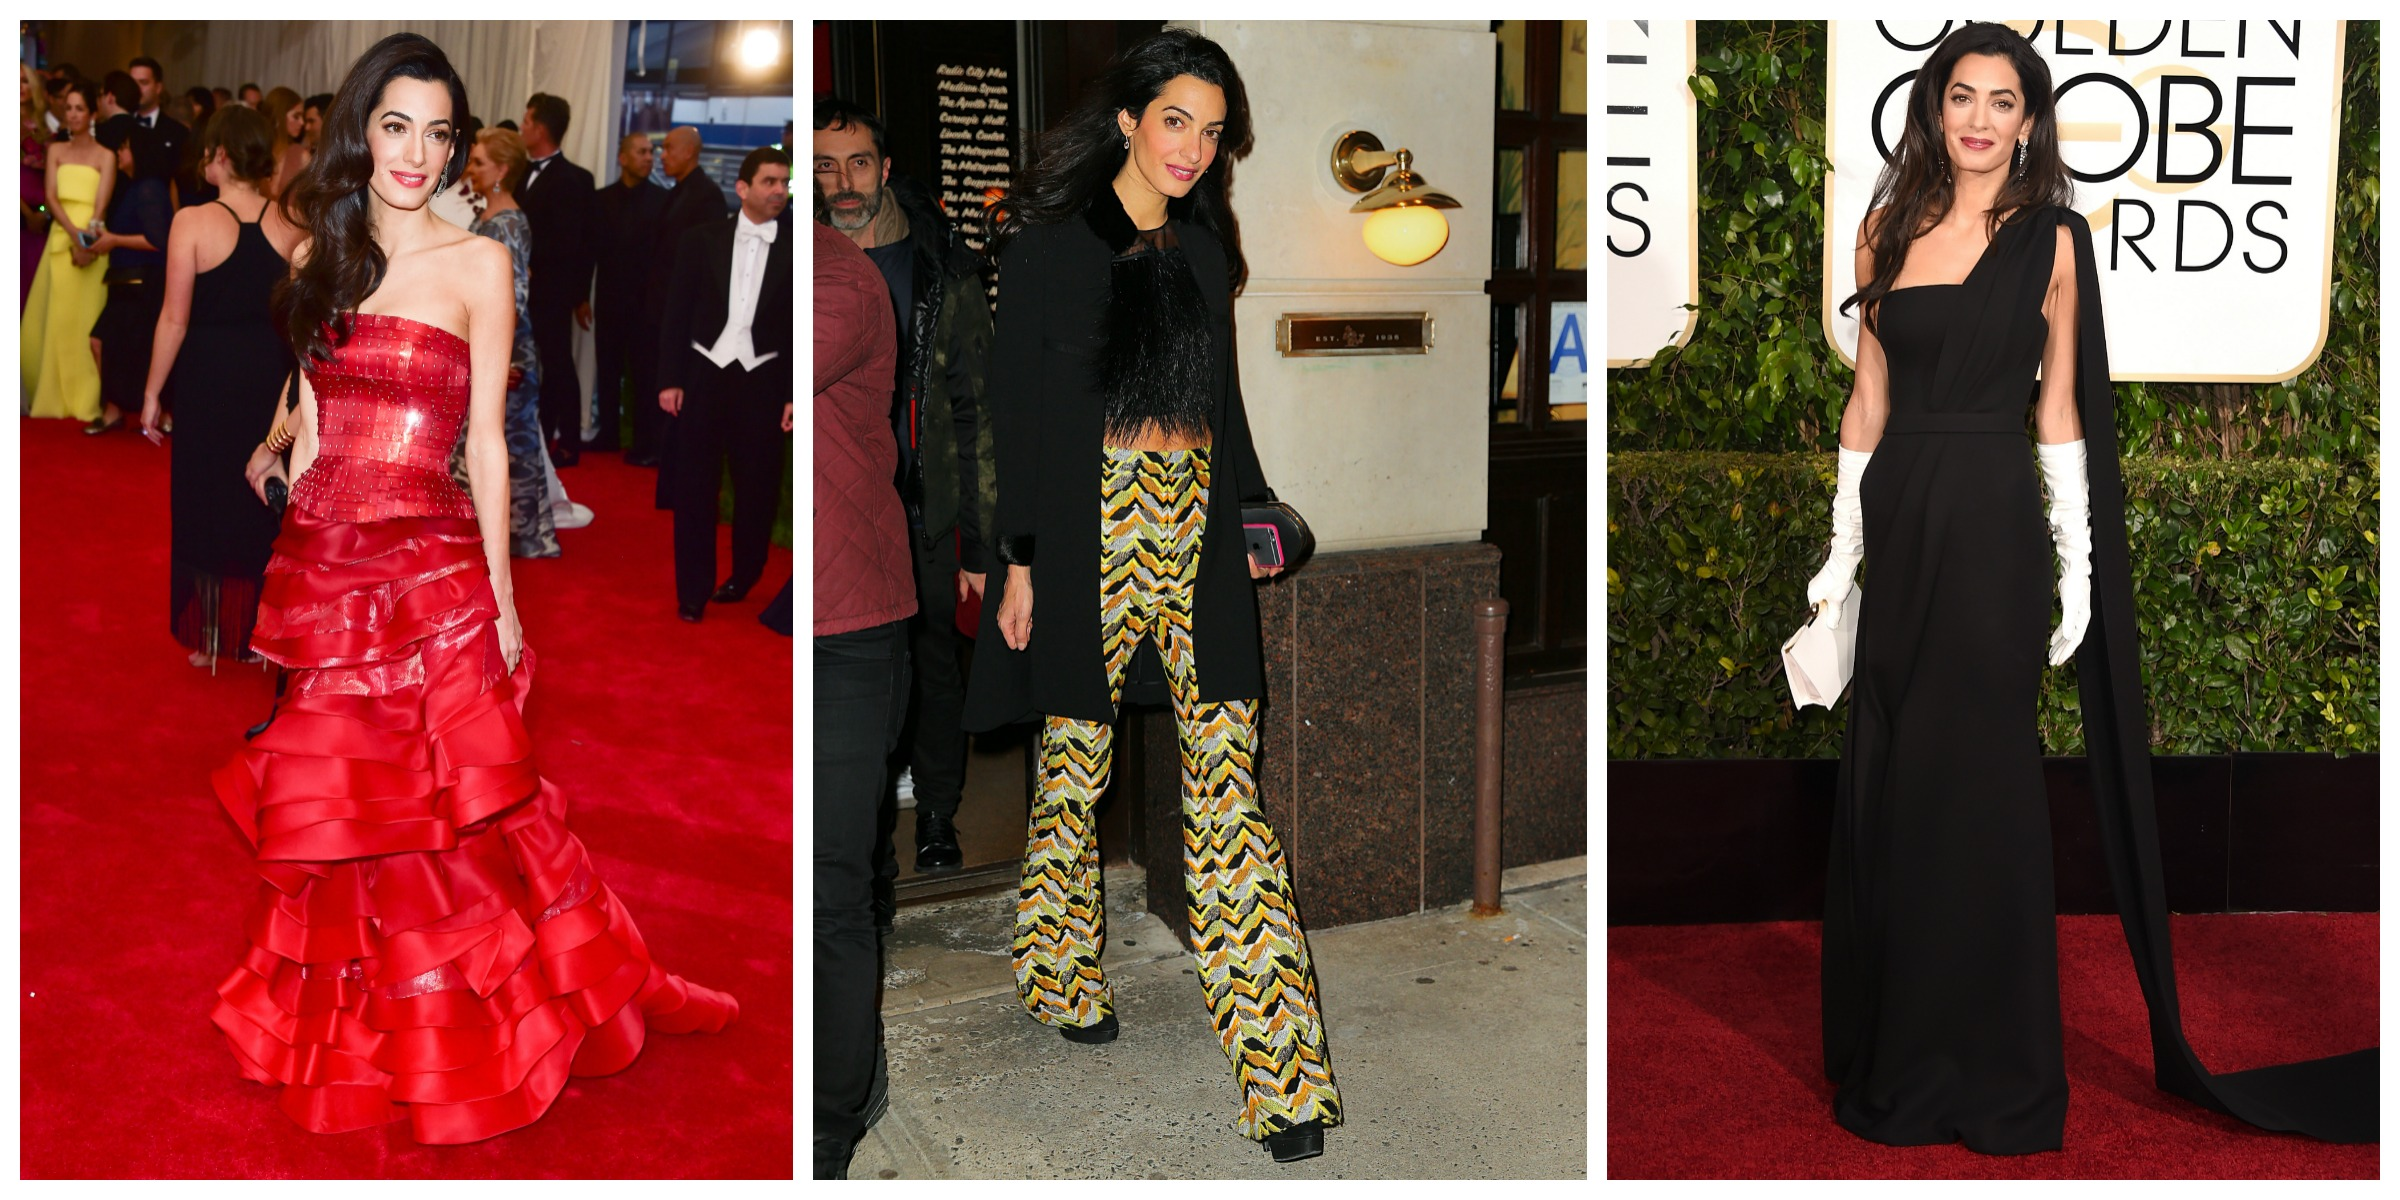 Amal Clooney year of fashion 2015